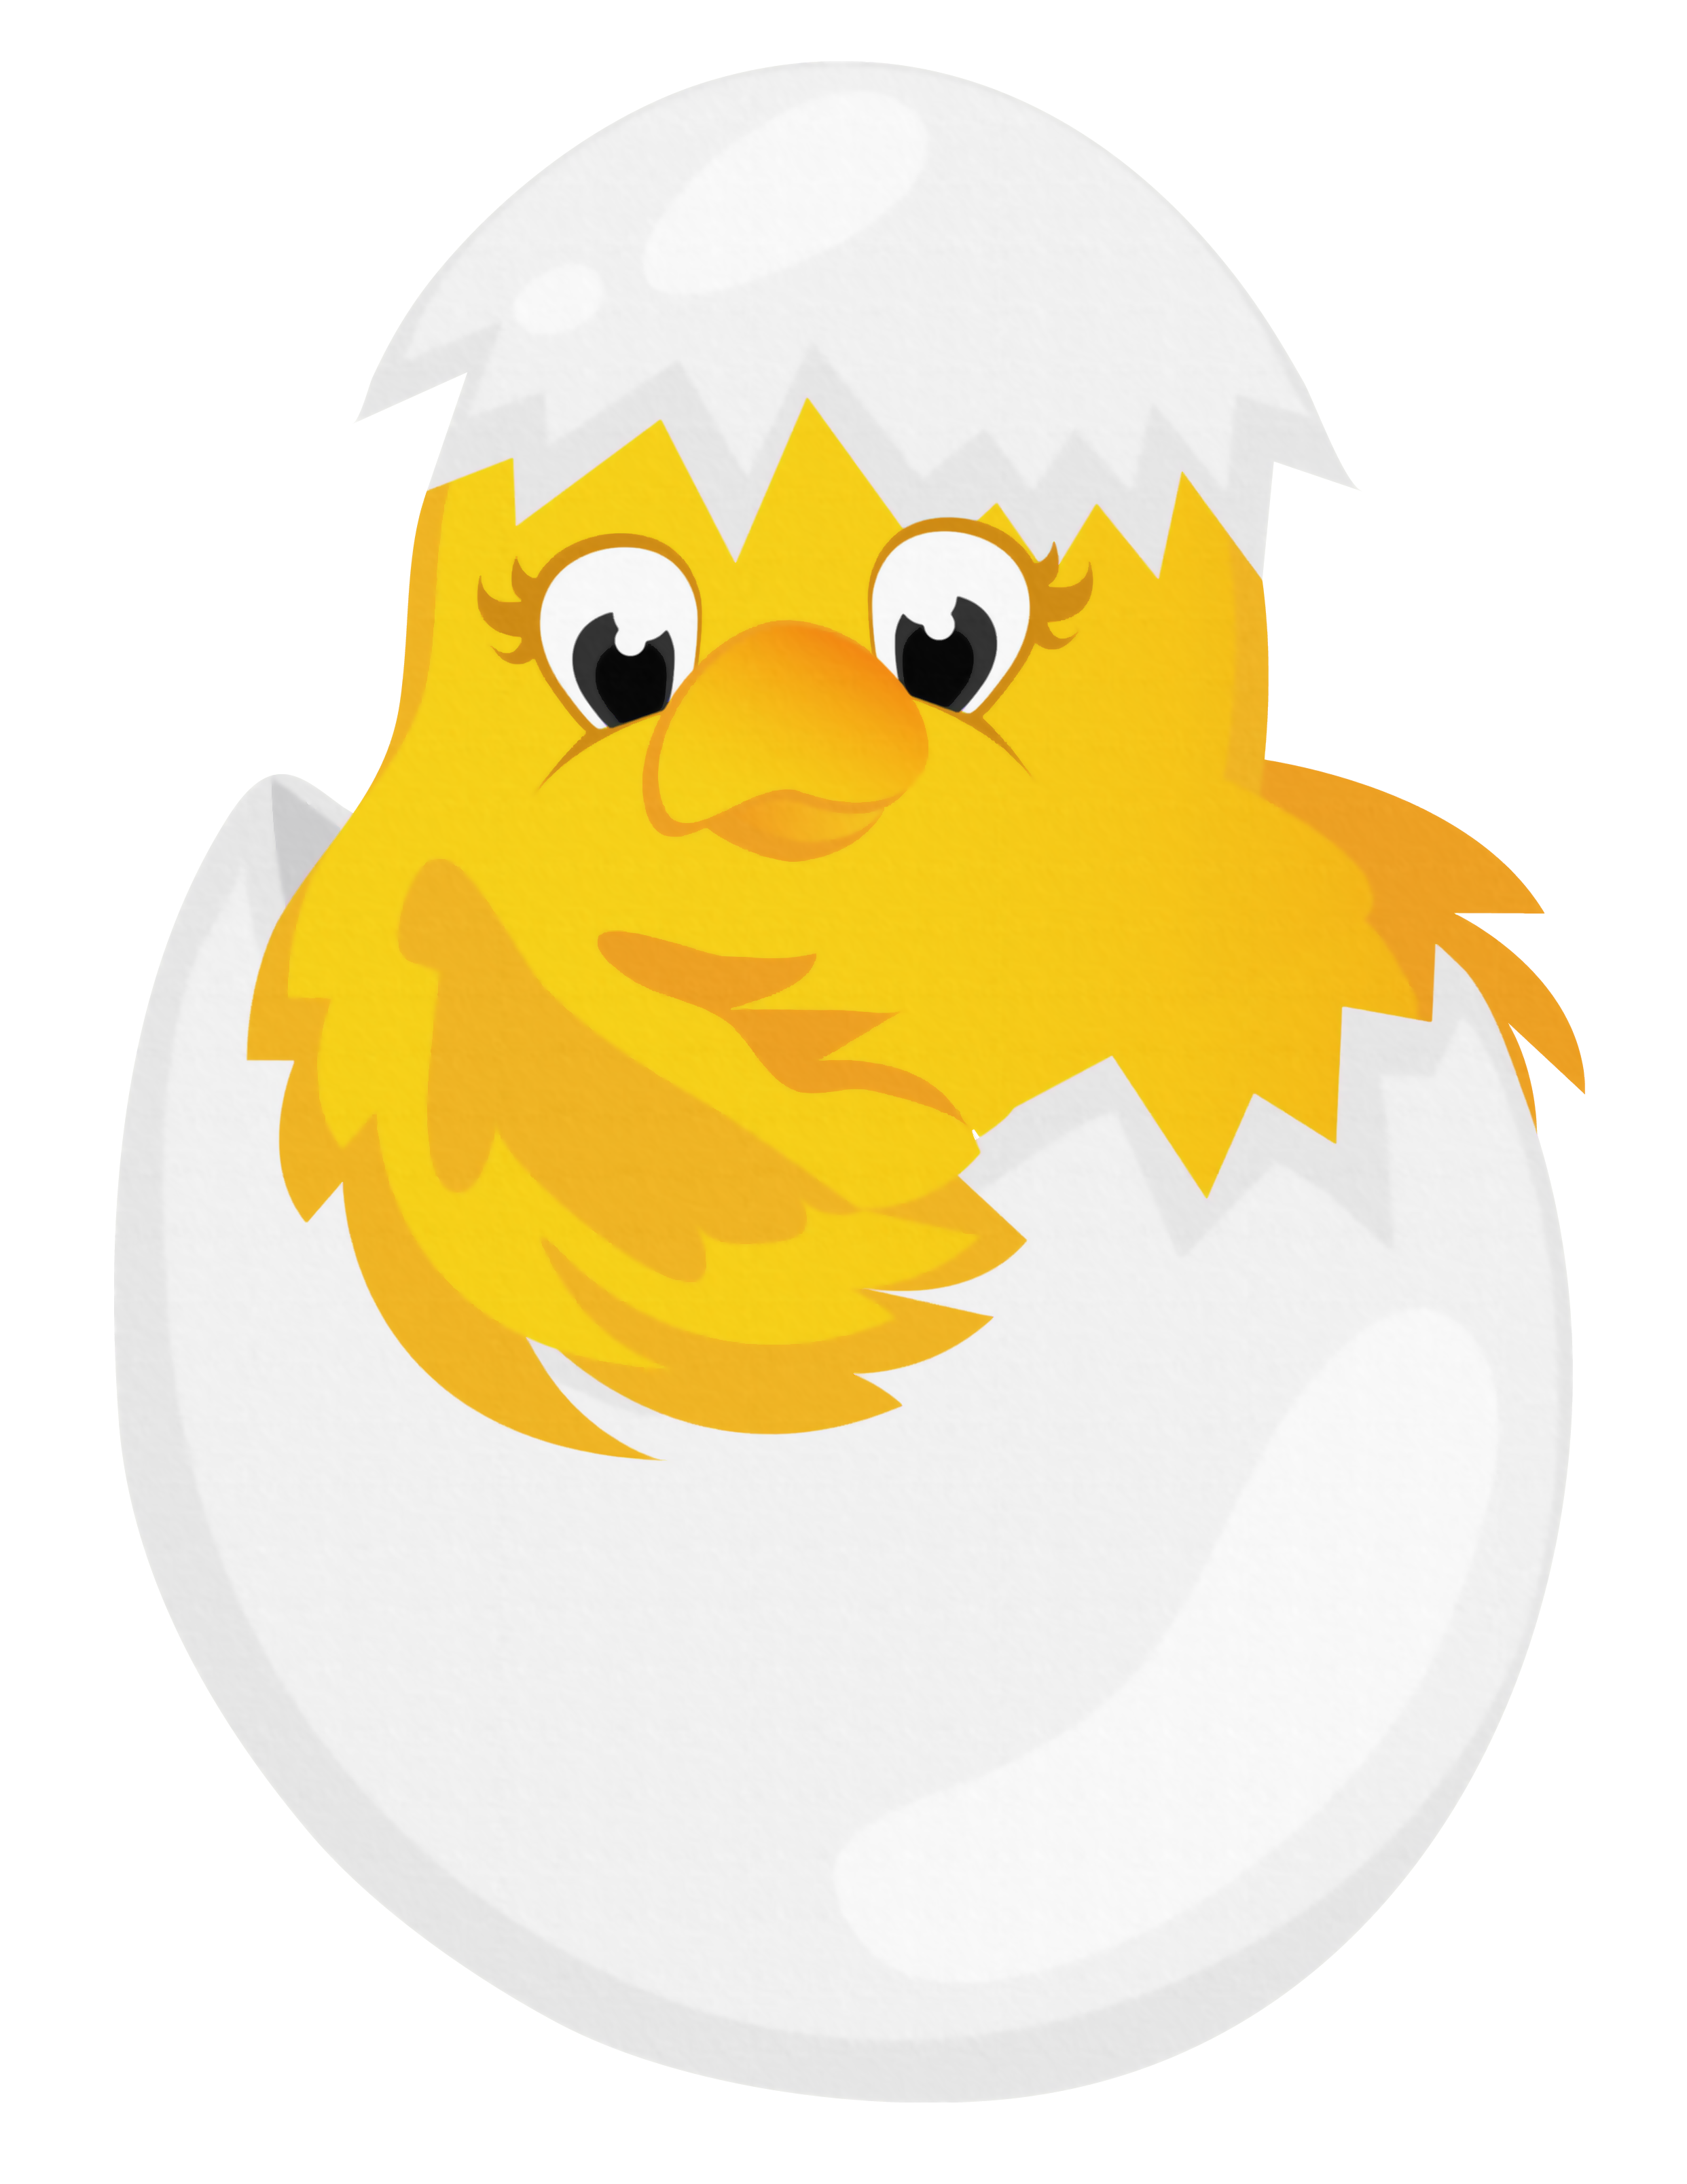 chick transparent easter